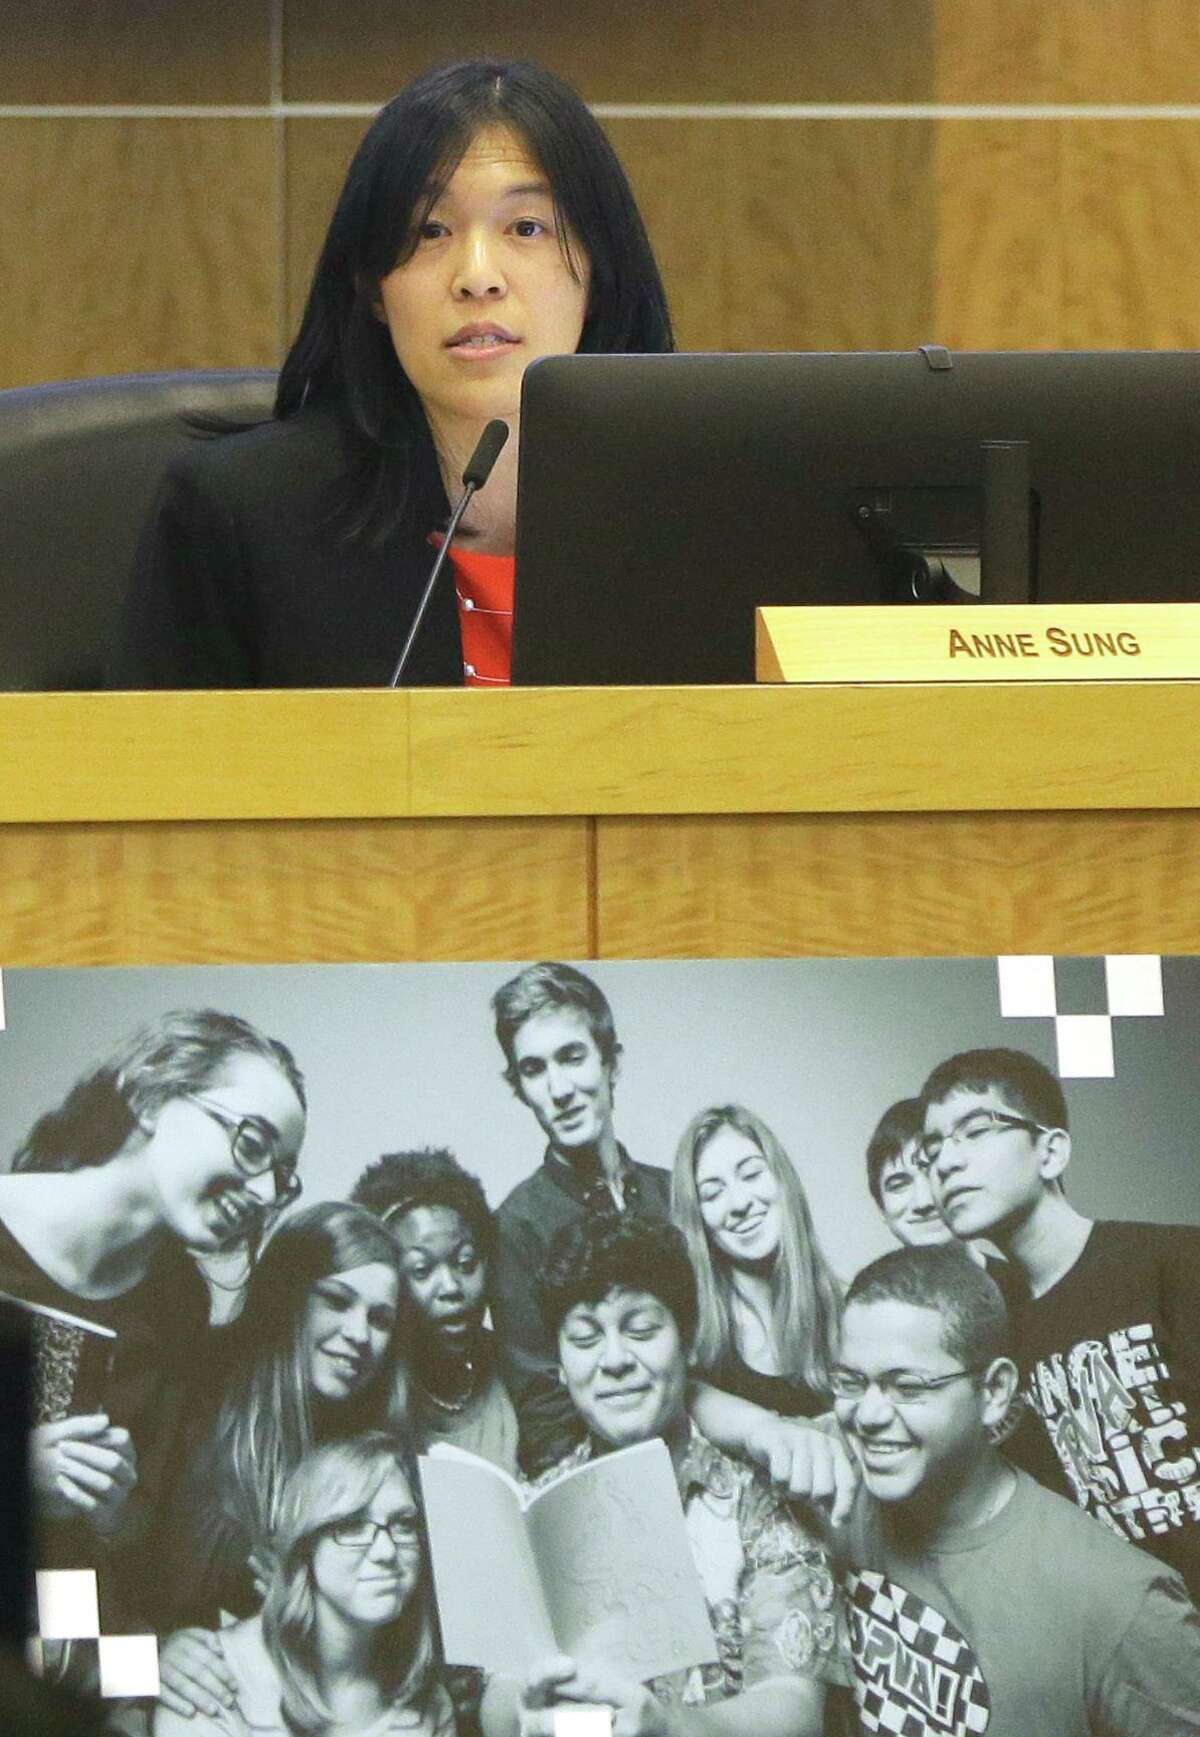 Houston ISD Trustee Anne Sung, pictured in 2018, said she is awaiting more information before drawing conclusions about the accuracy of a state investigative report that details extensive problems with the district's special education department. Sung chaired a district committee in 2018 that called the state of HISD's special education services